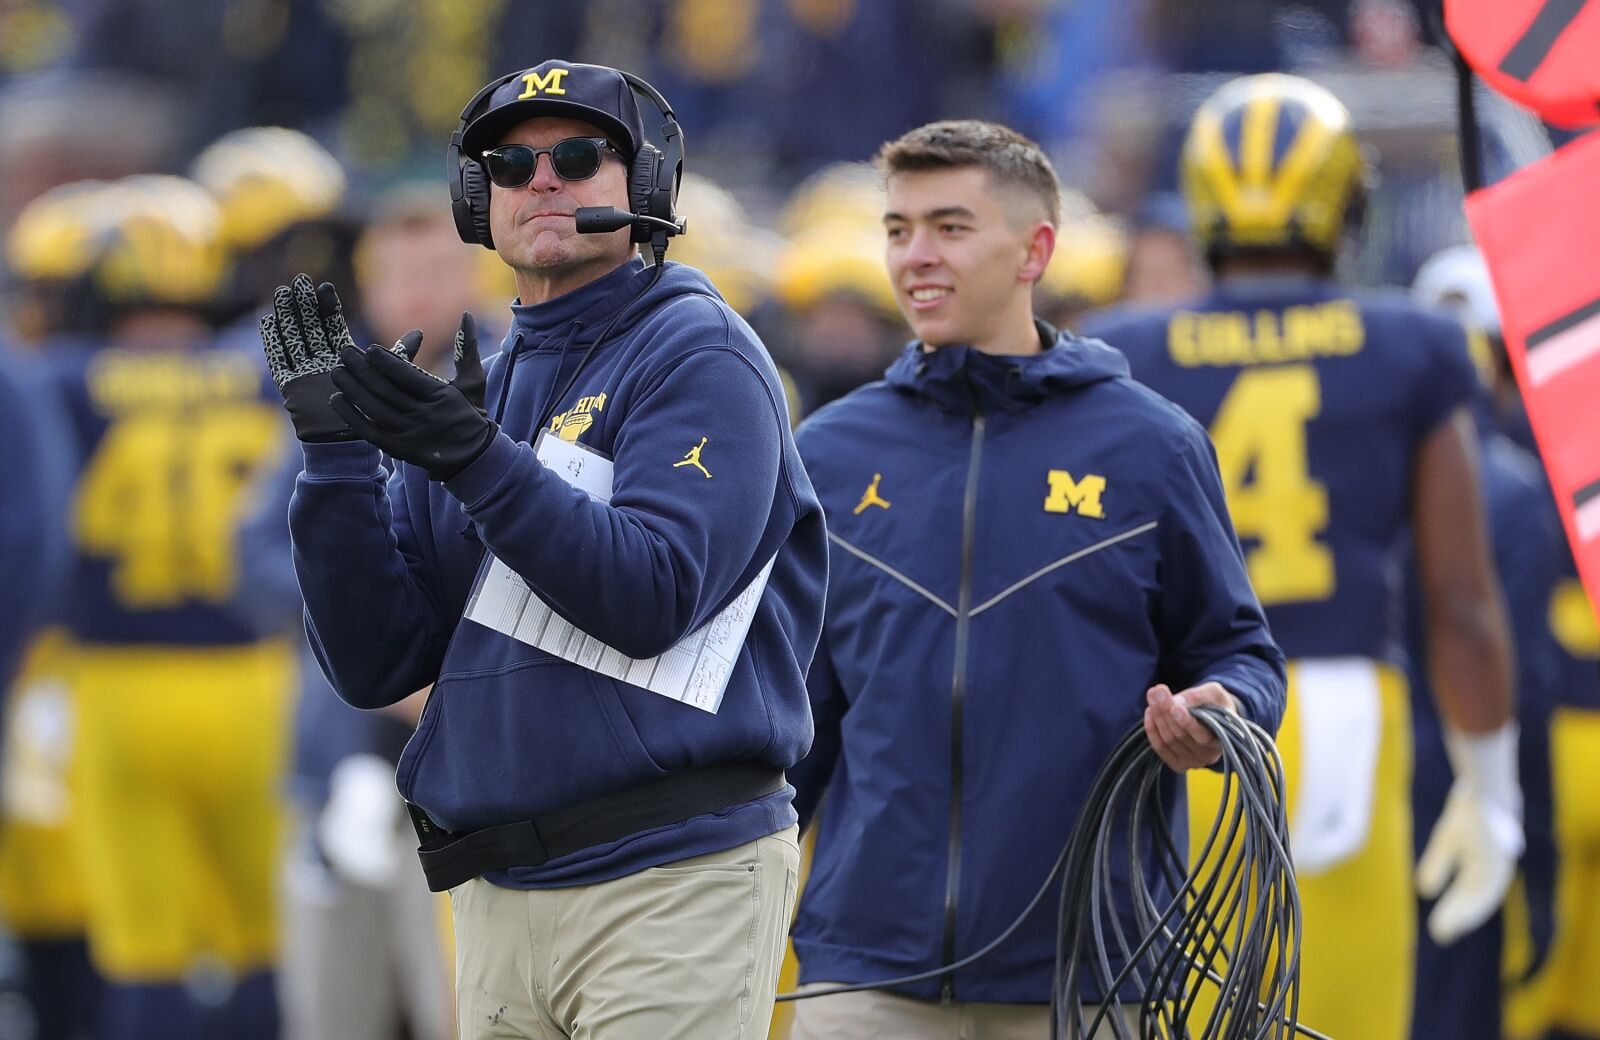 Michigan Football: Breaking down two key recruiting visits this weekend